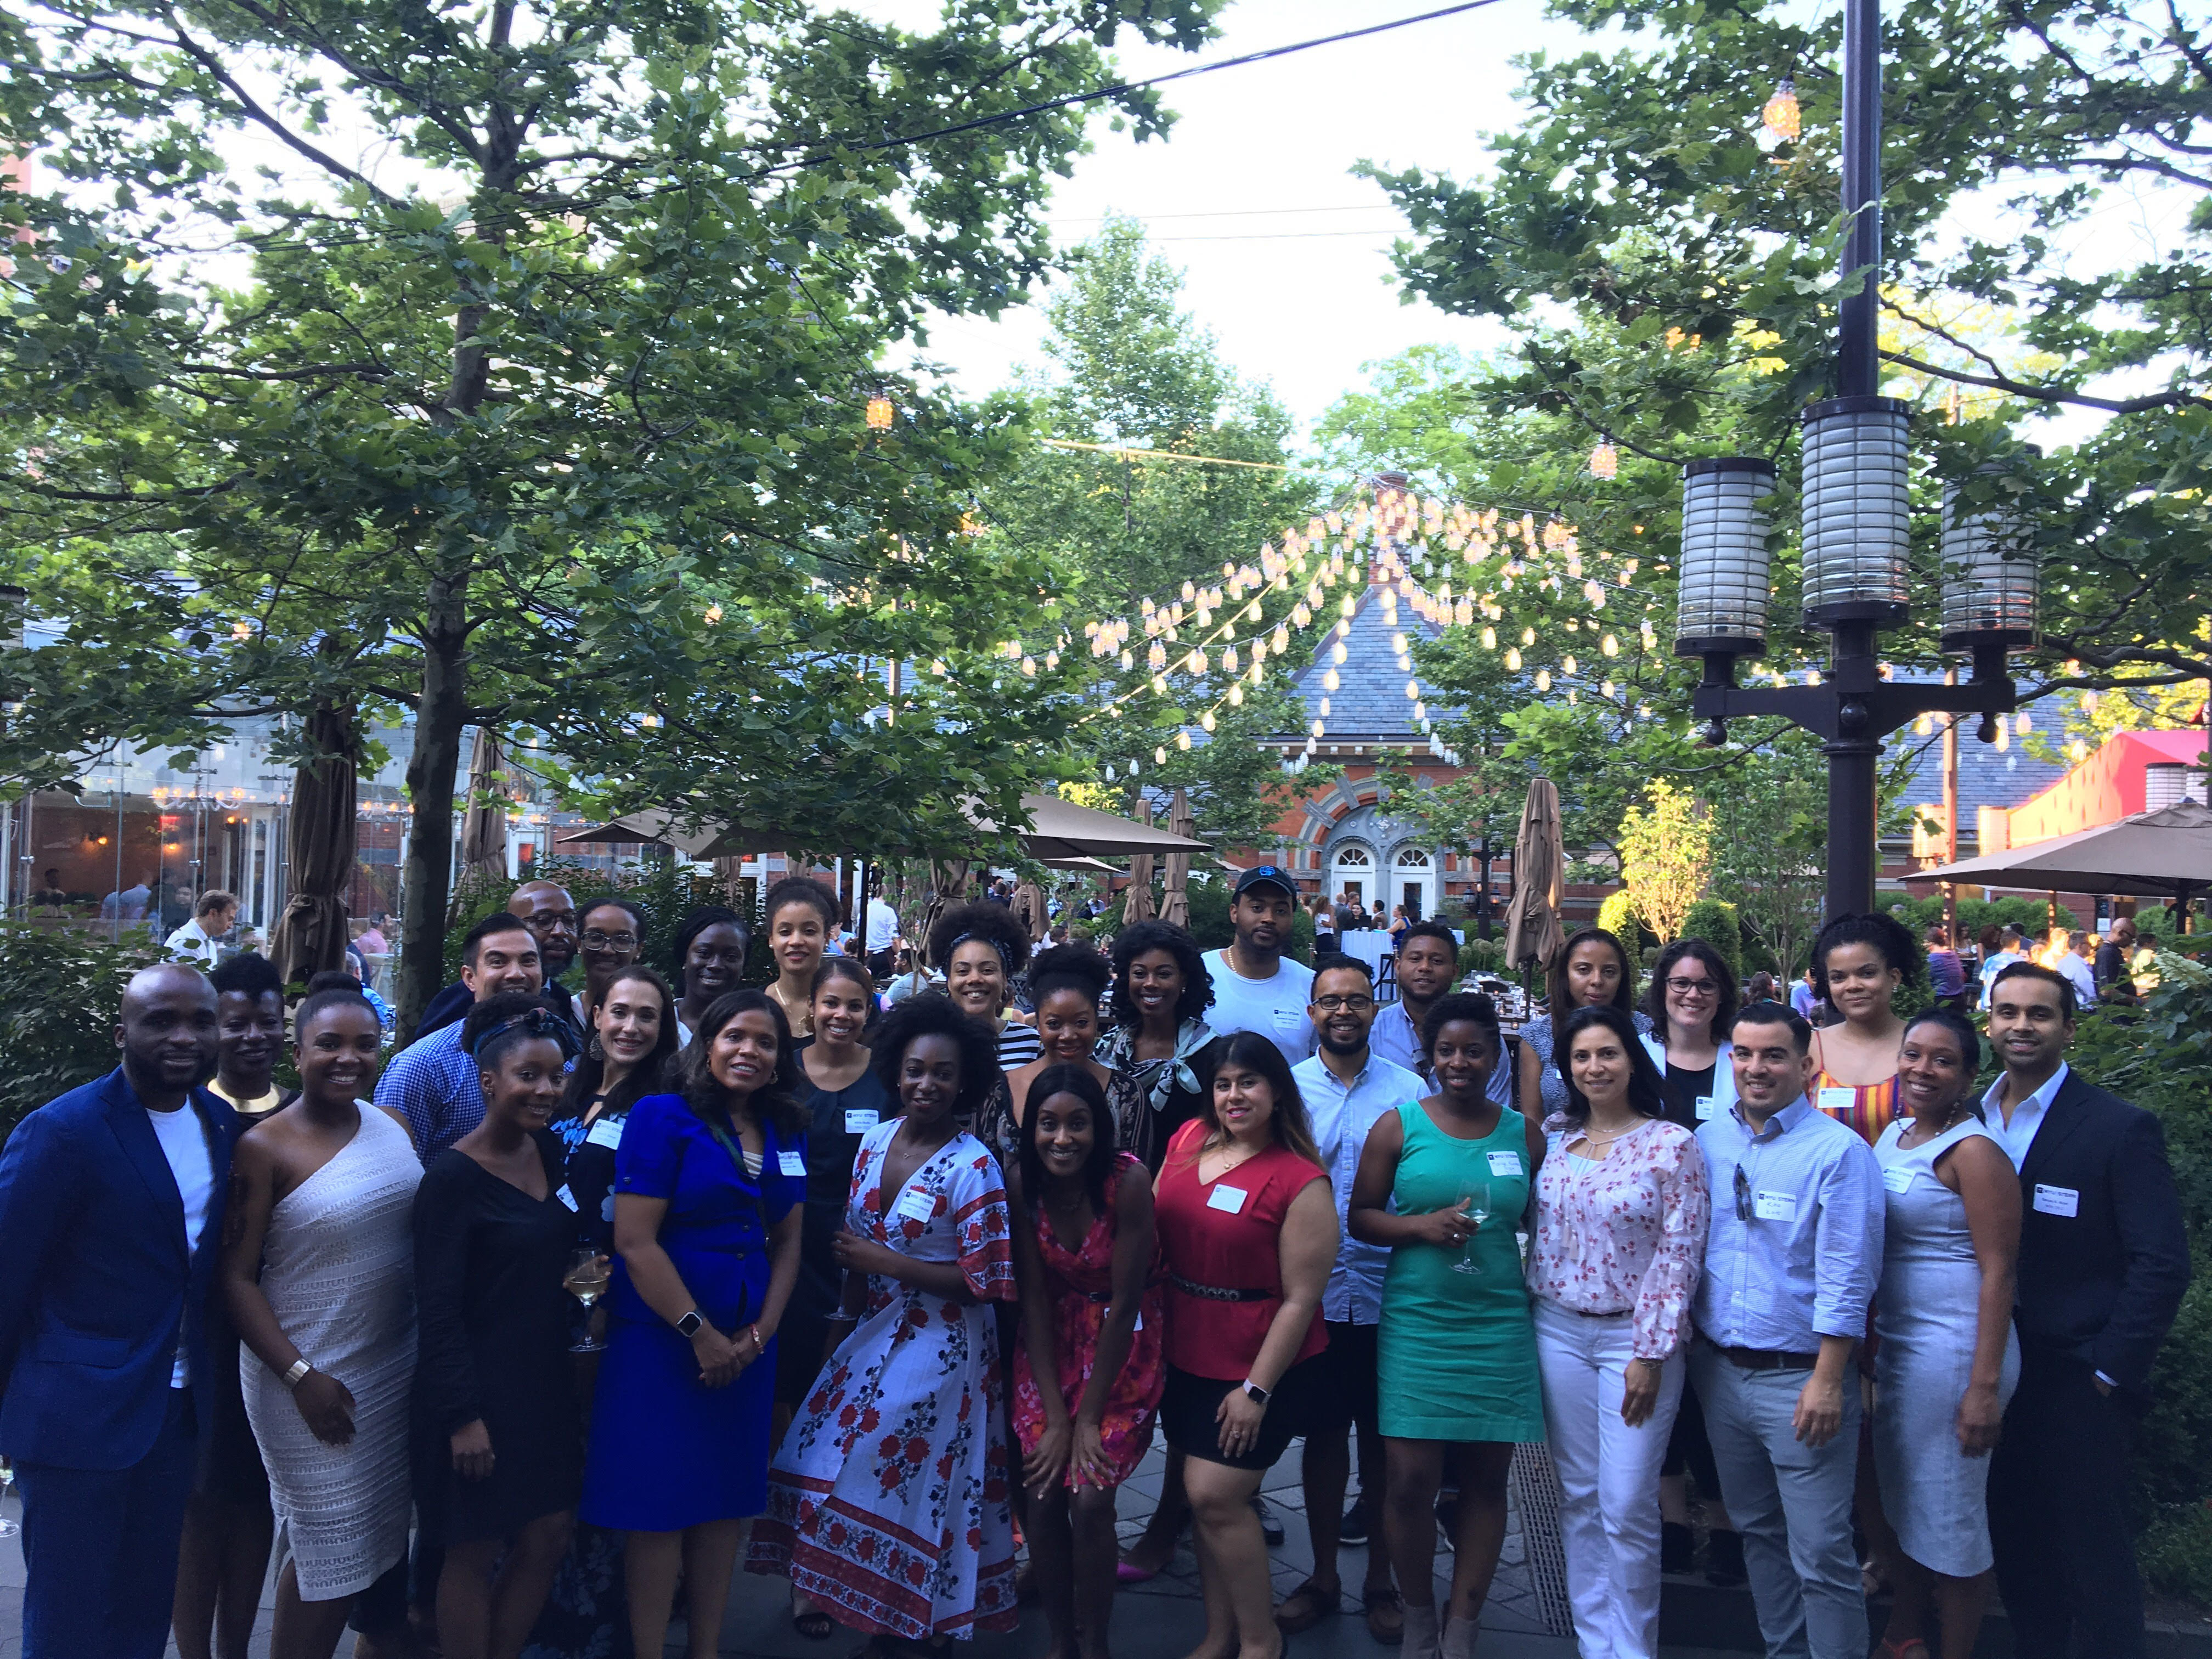 Alumni gather at a soiree at Tavern on the Green